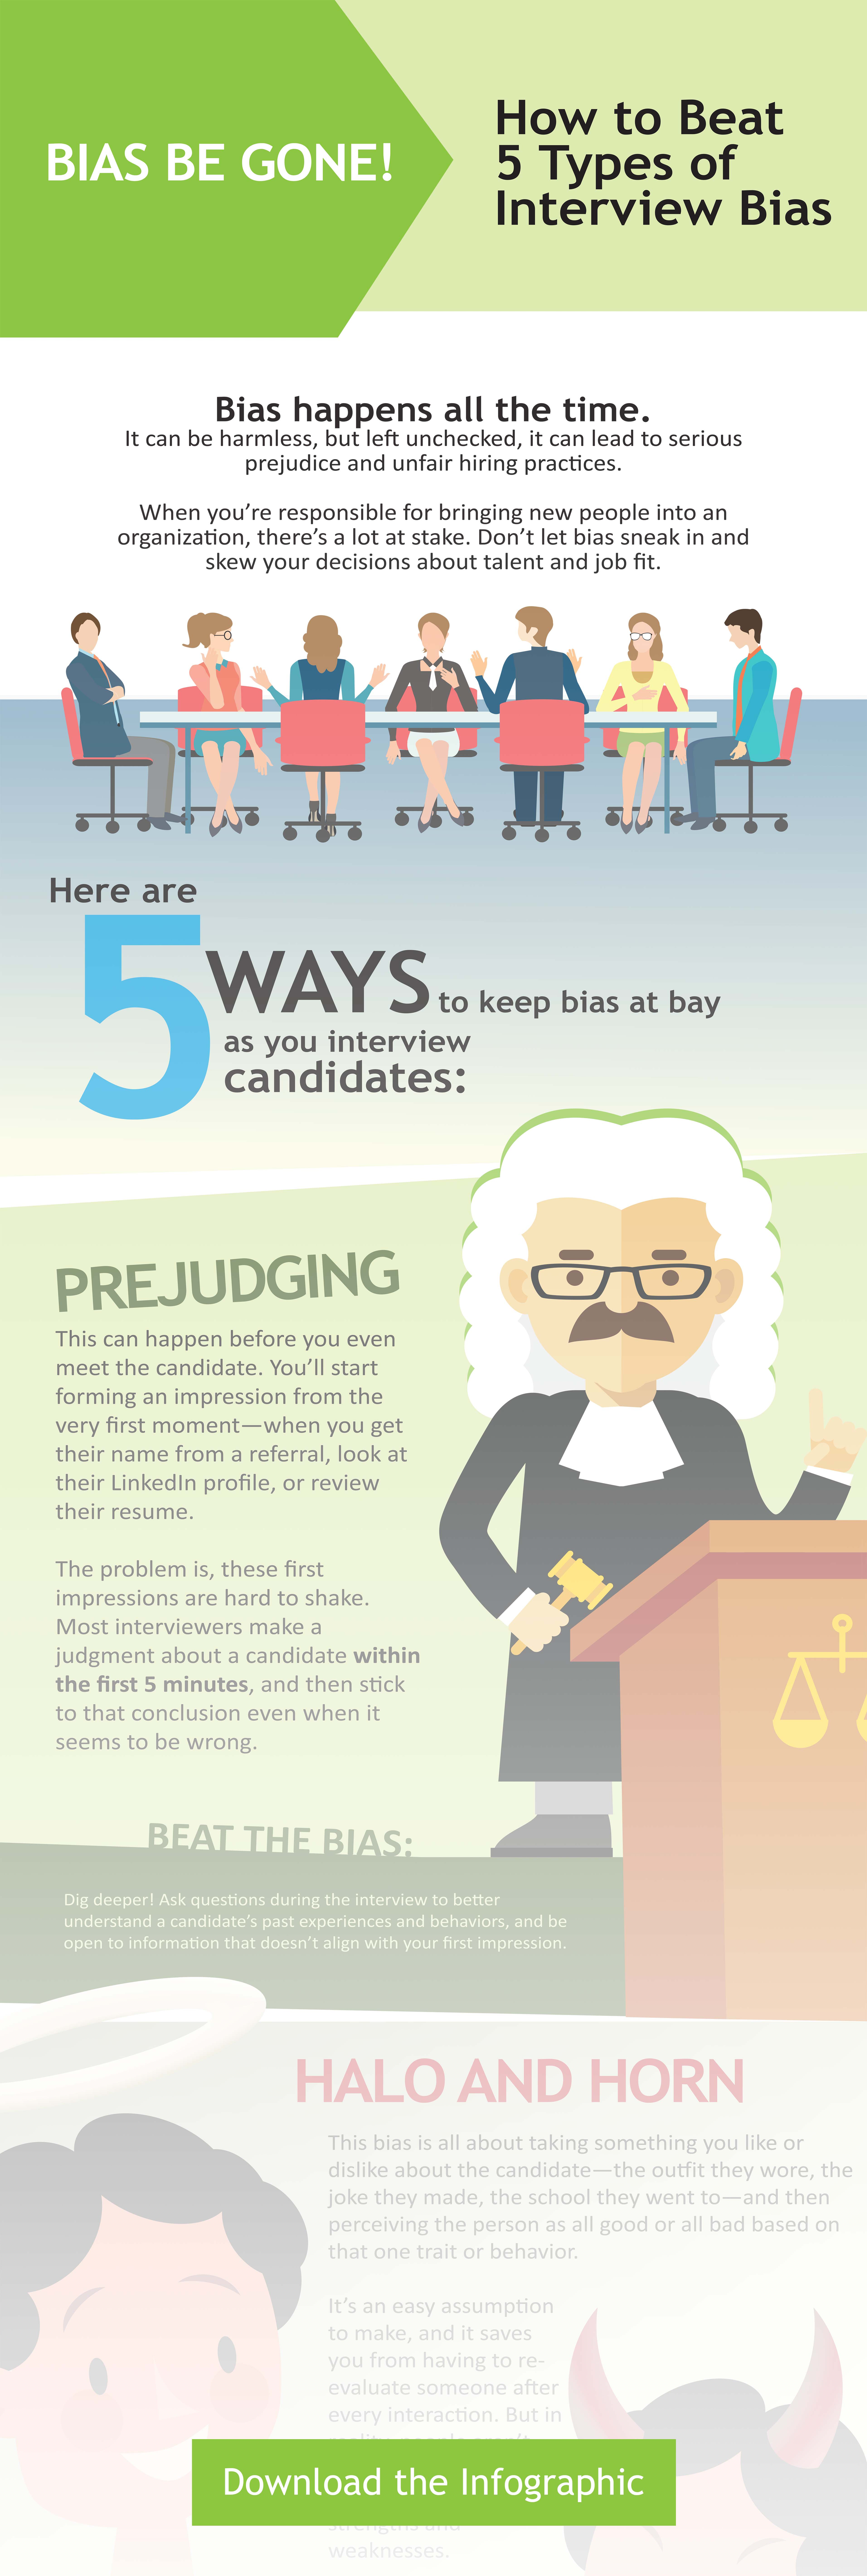 bias be gone how to beat 5 types of interview bias outmatch how to beat bias